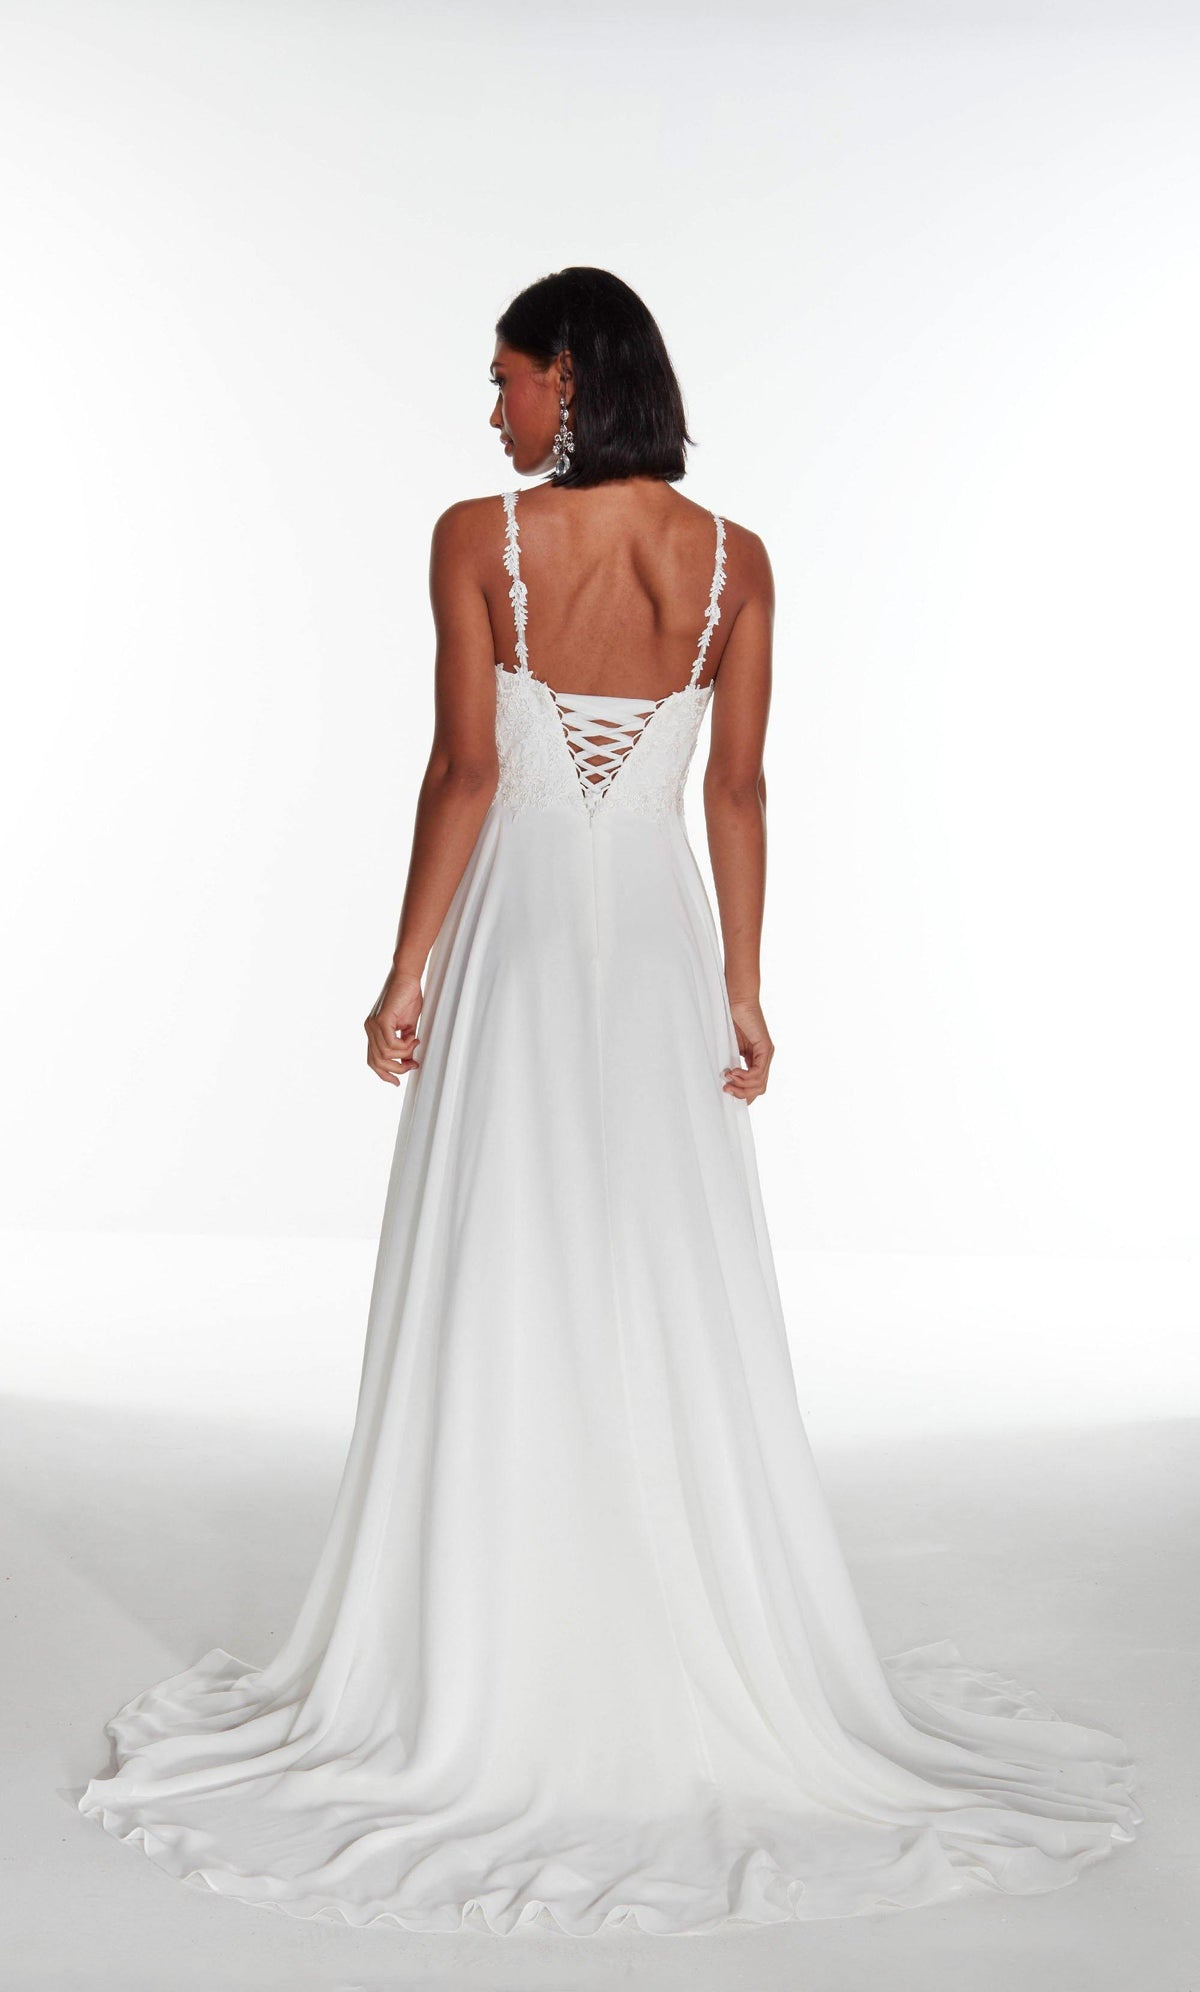 Diamond White flowy chiffon informal bridal gown featuring a lace bodice with a lace up back and train